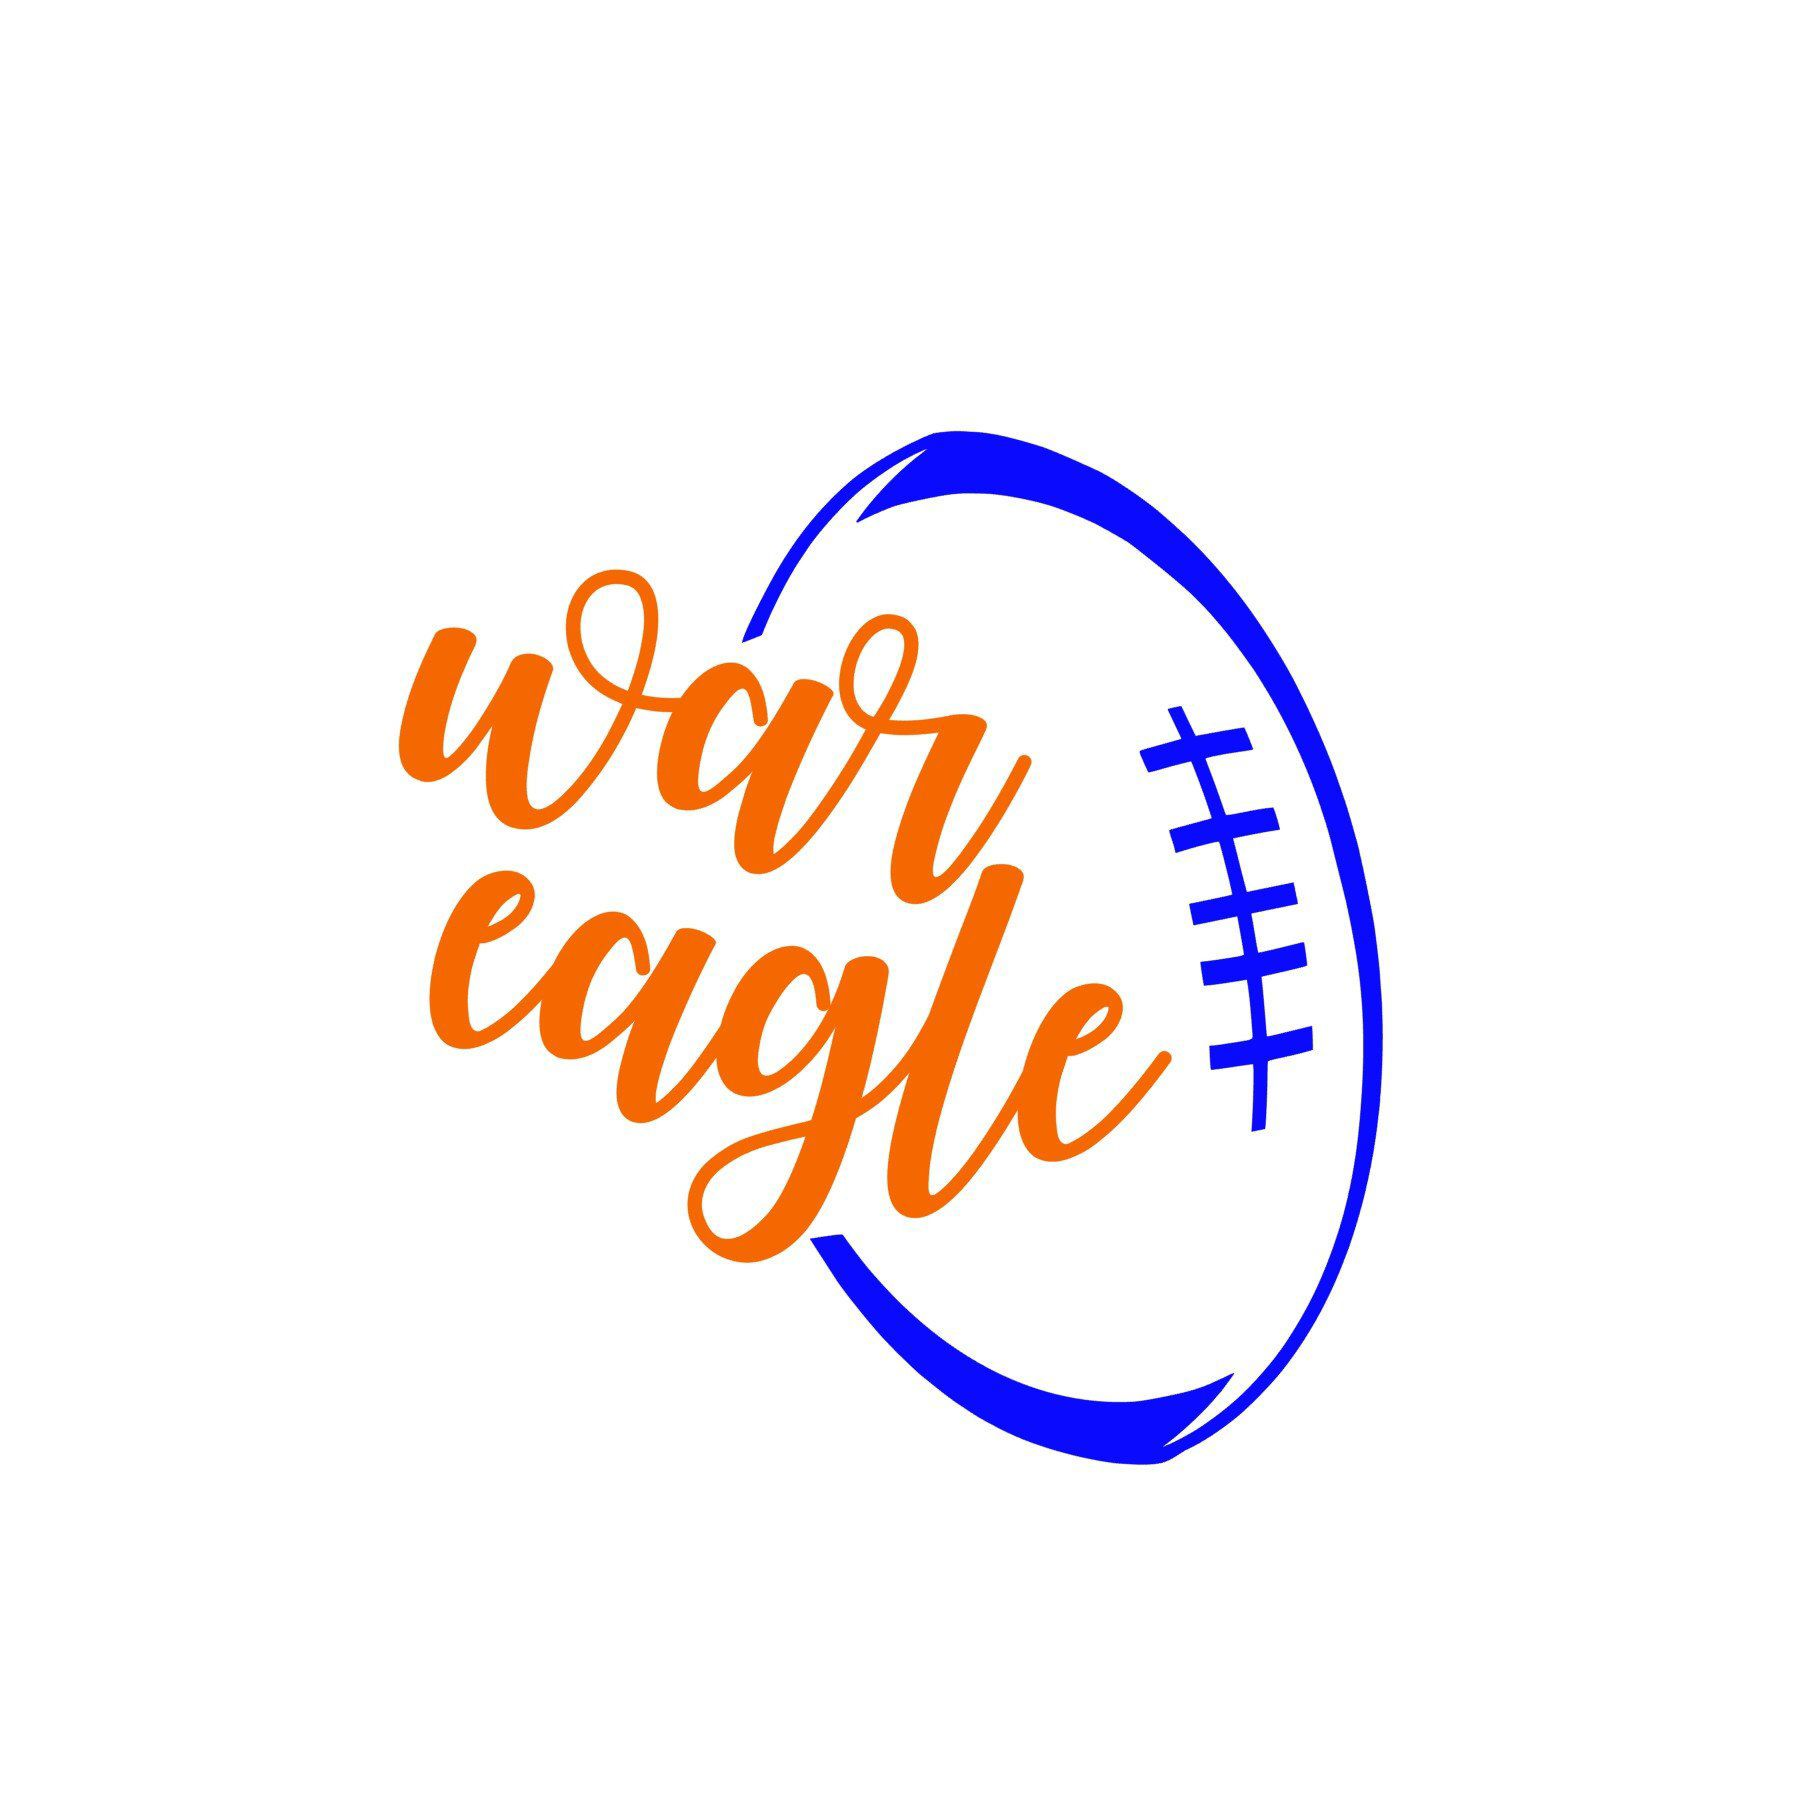 Auburn War Eagle Football Svg Or Silhouette Instant Download By Mandanoelle On Etsy Https Www Etsy Com Listi Cricut Explore Projects College Crafts War Eagle